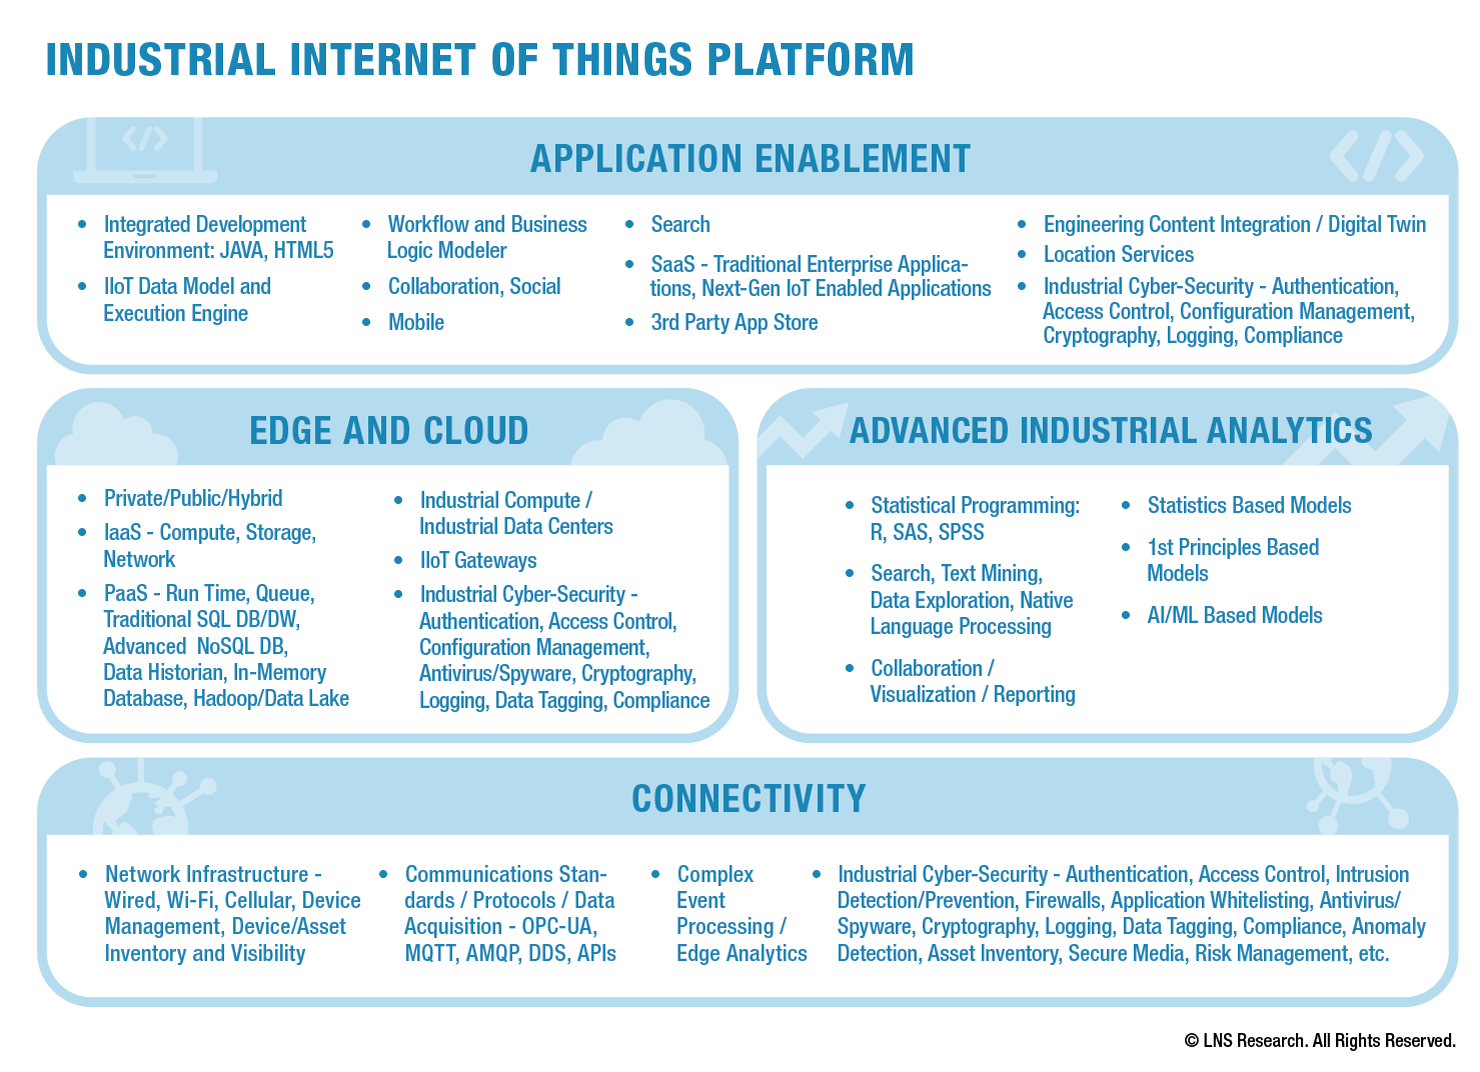 Industrial Internet of Things Platform